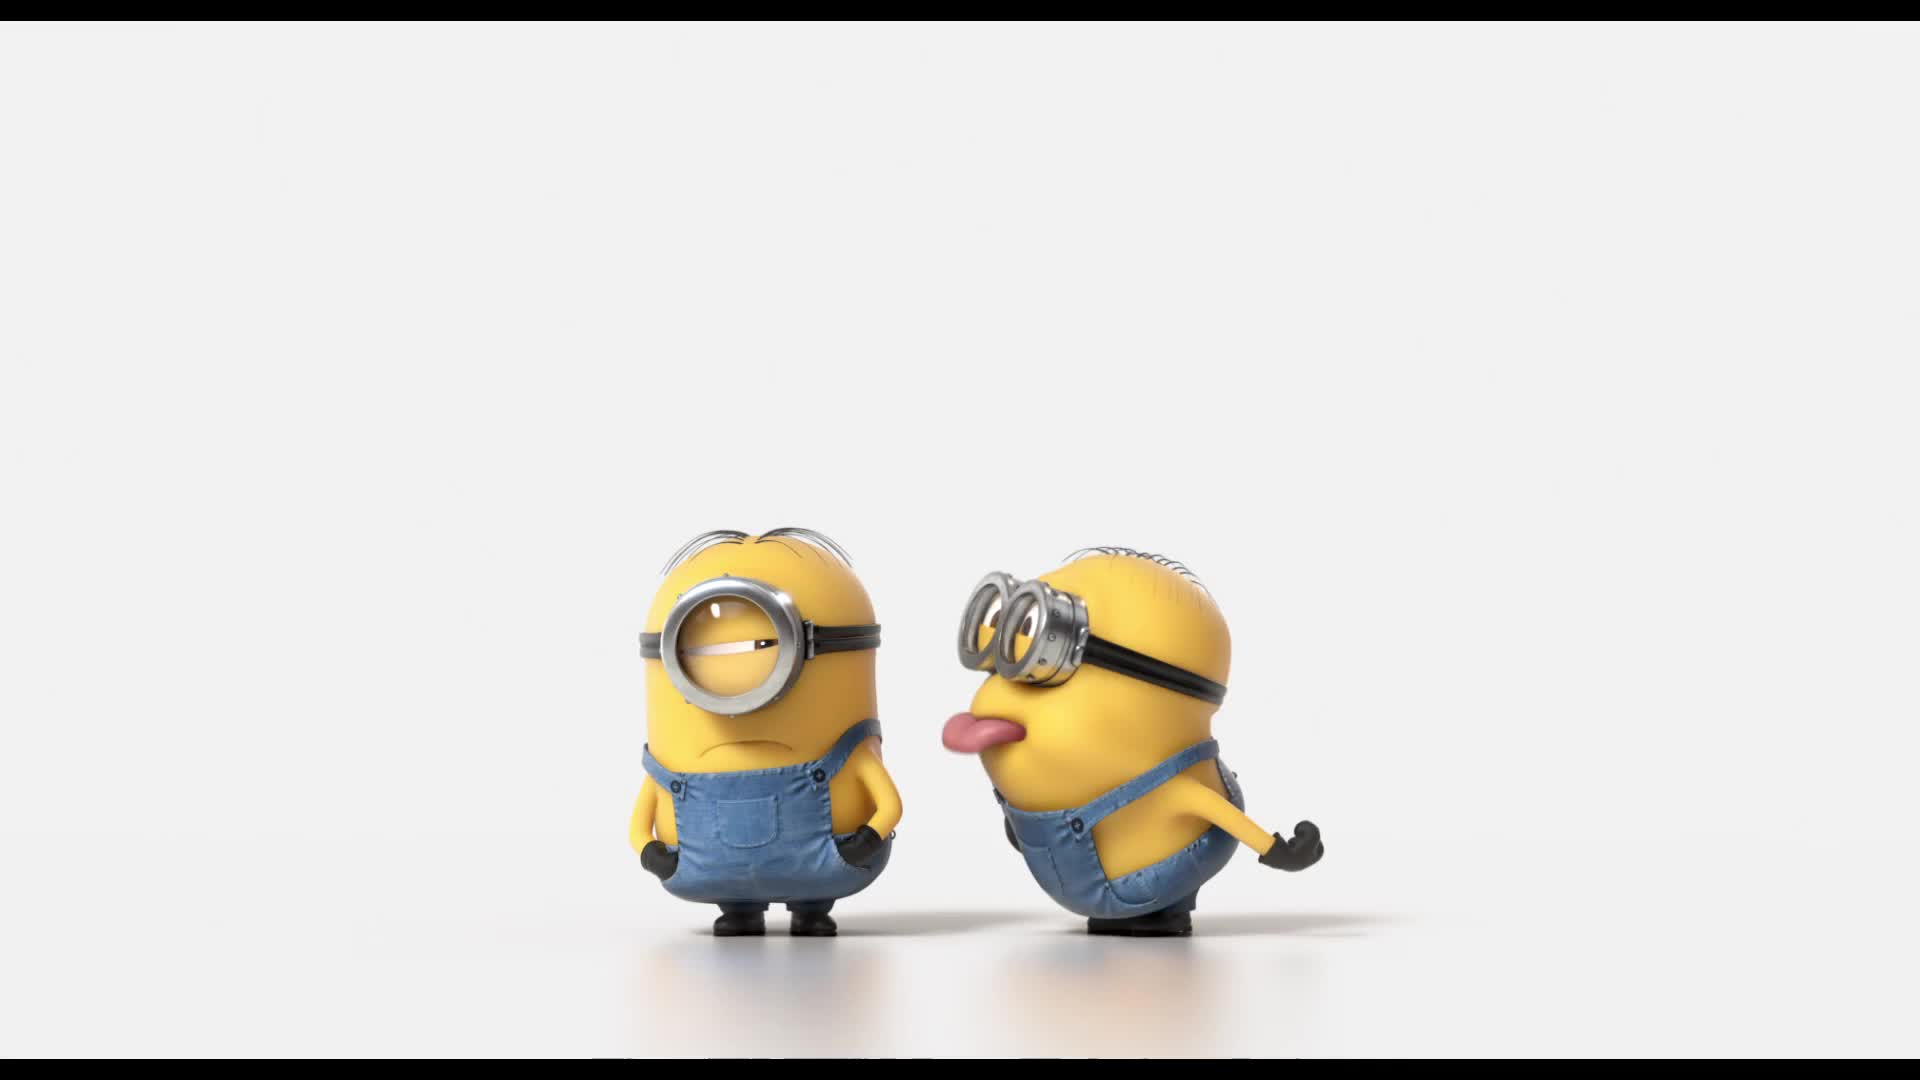 Funny Minion Wallpapers HD download 1920x1080